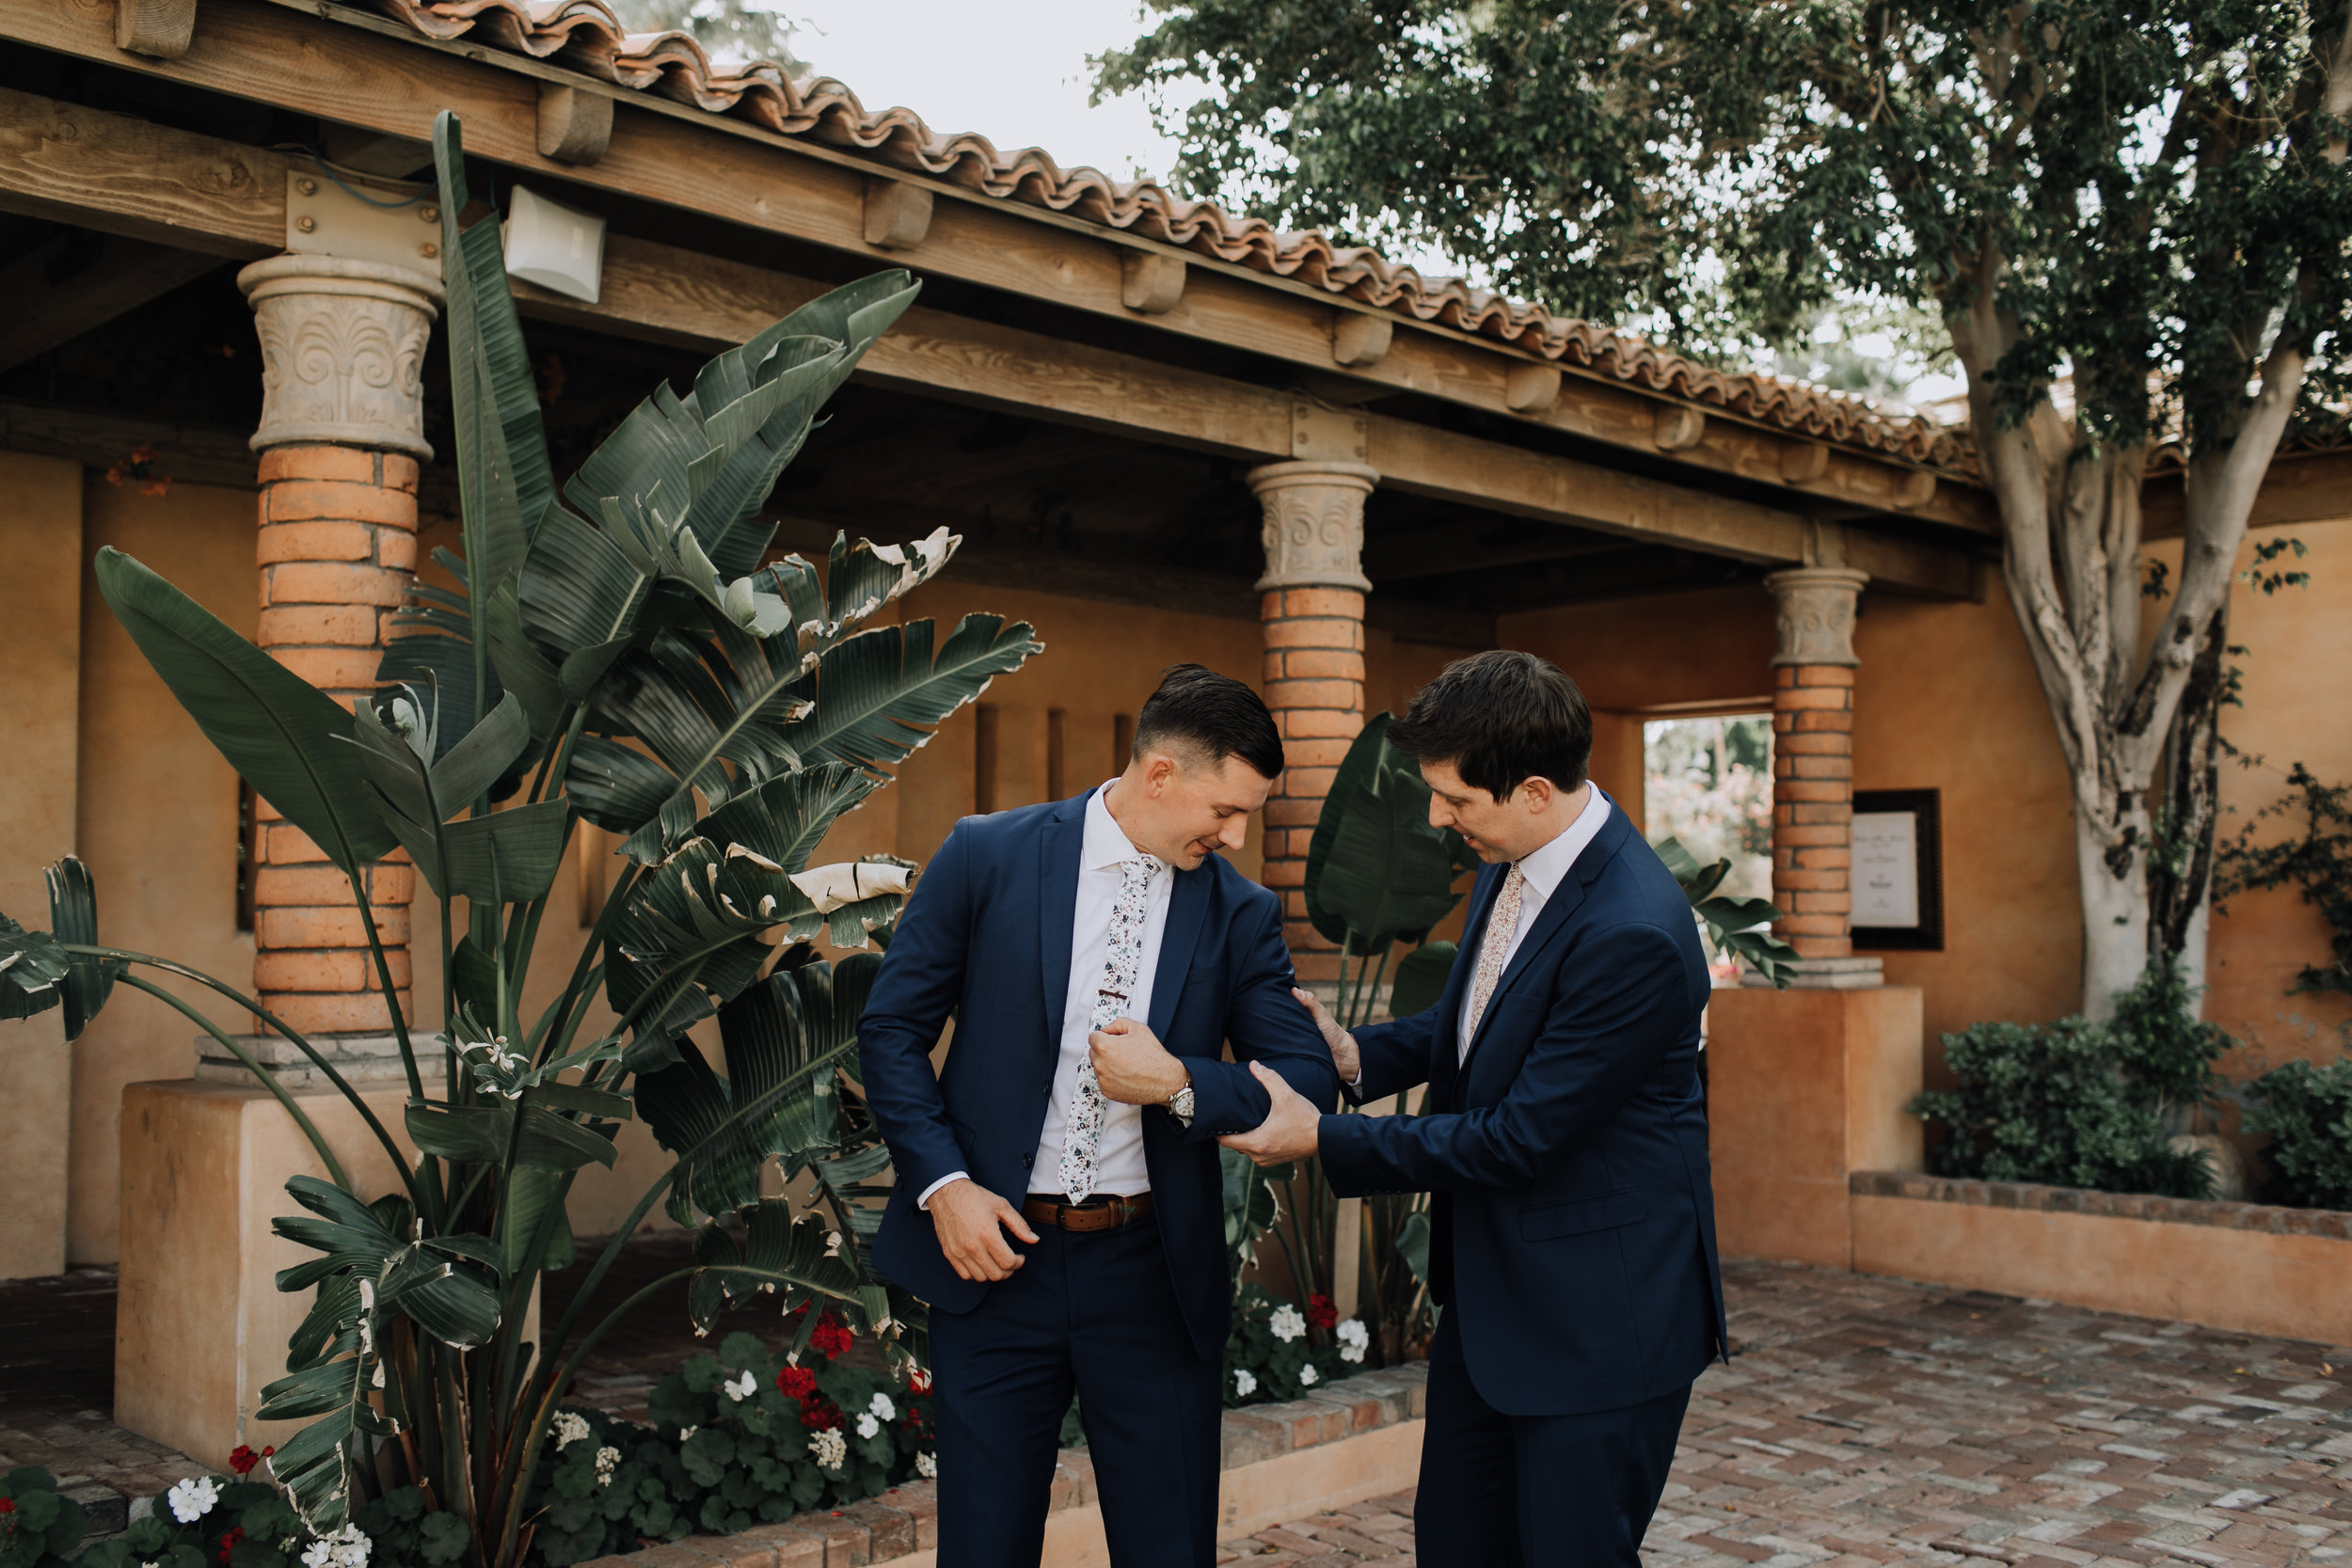 Groom and Groomsmen Style - Navy Suits with Floral Ties